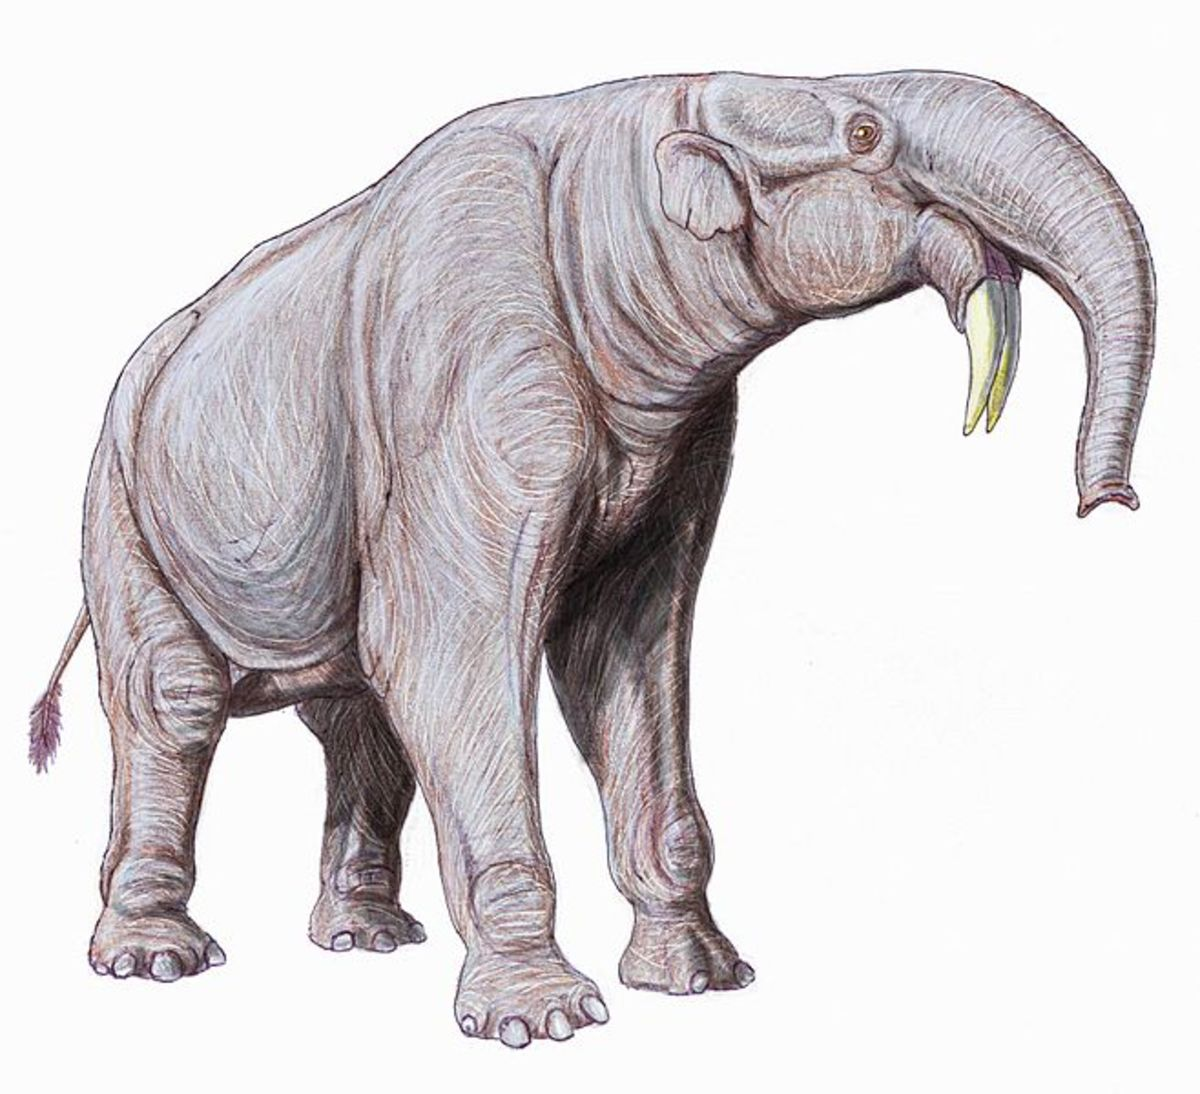 Deinotherium was an ancient relative of modern elephants.